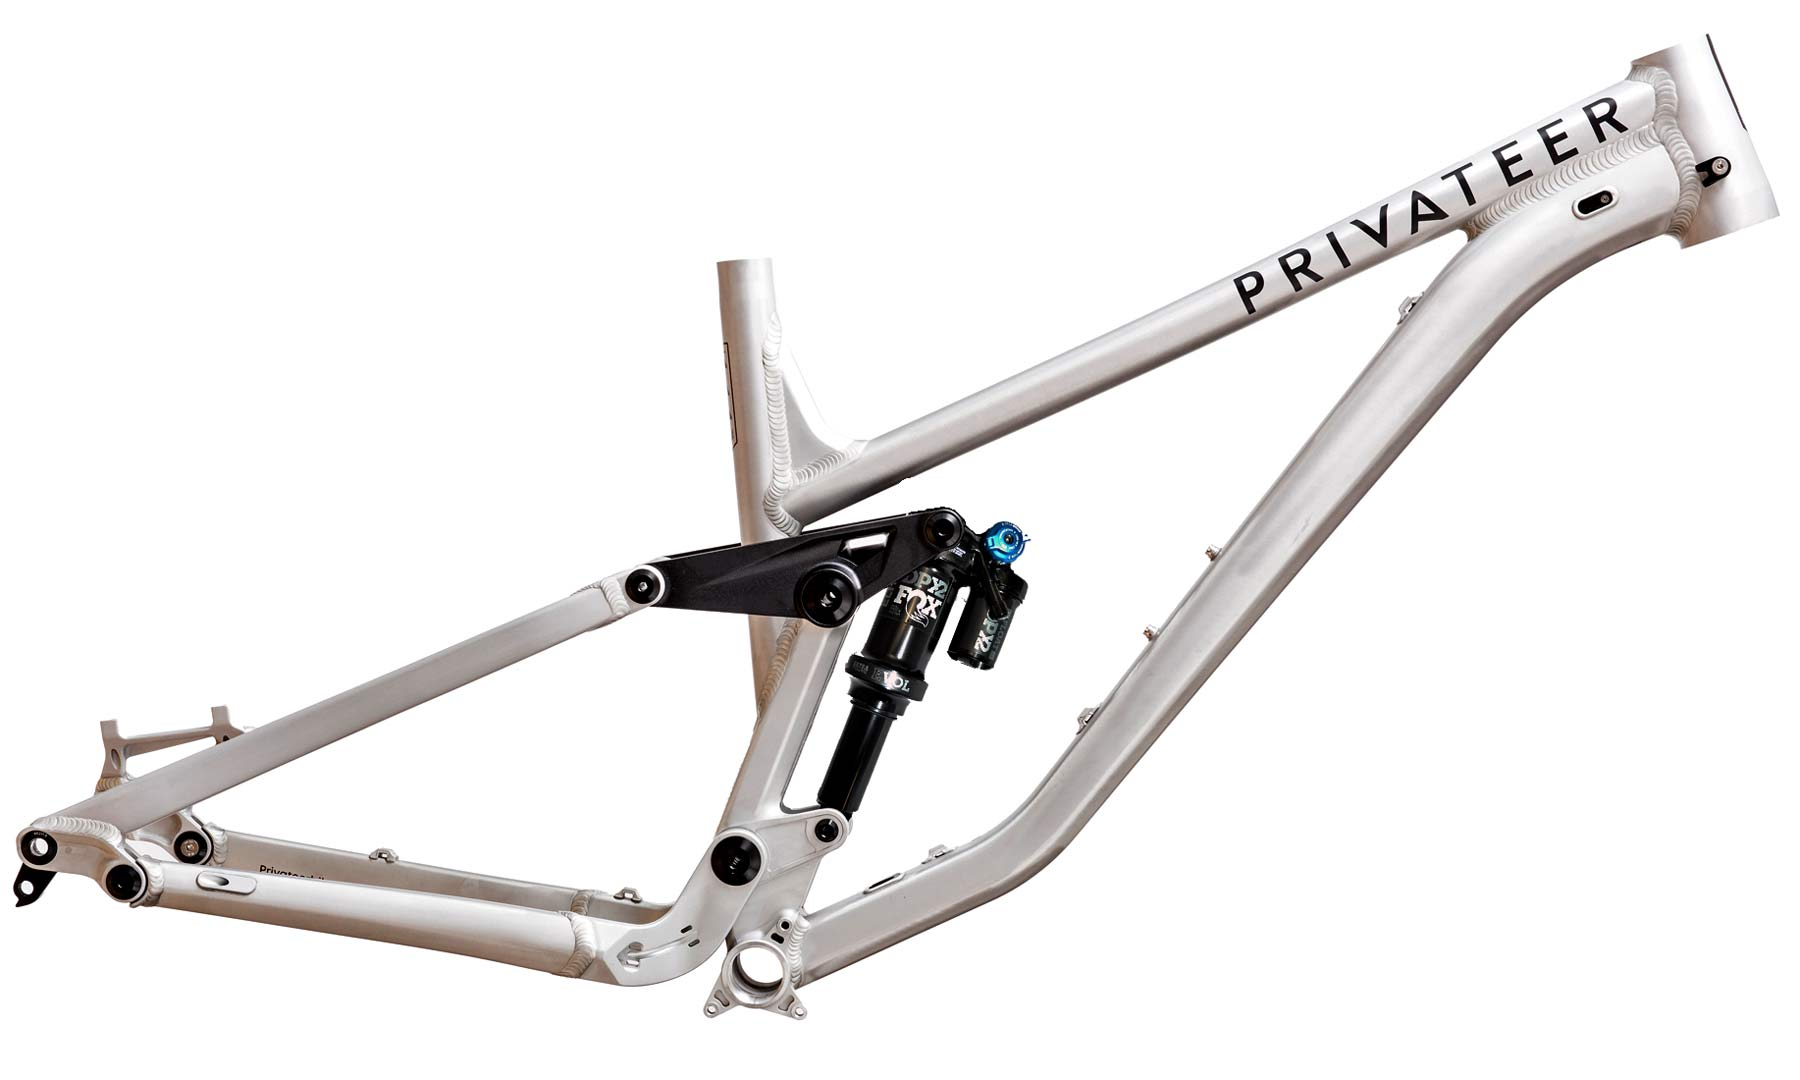 Privateer 141 all-mountain trail bike, affordable alloy 29er trail enduro all-mountain bike, raw aluminium frameset